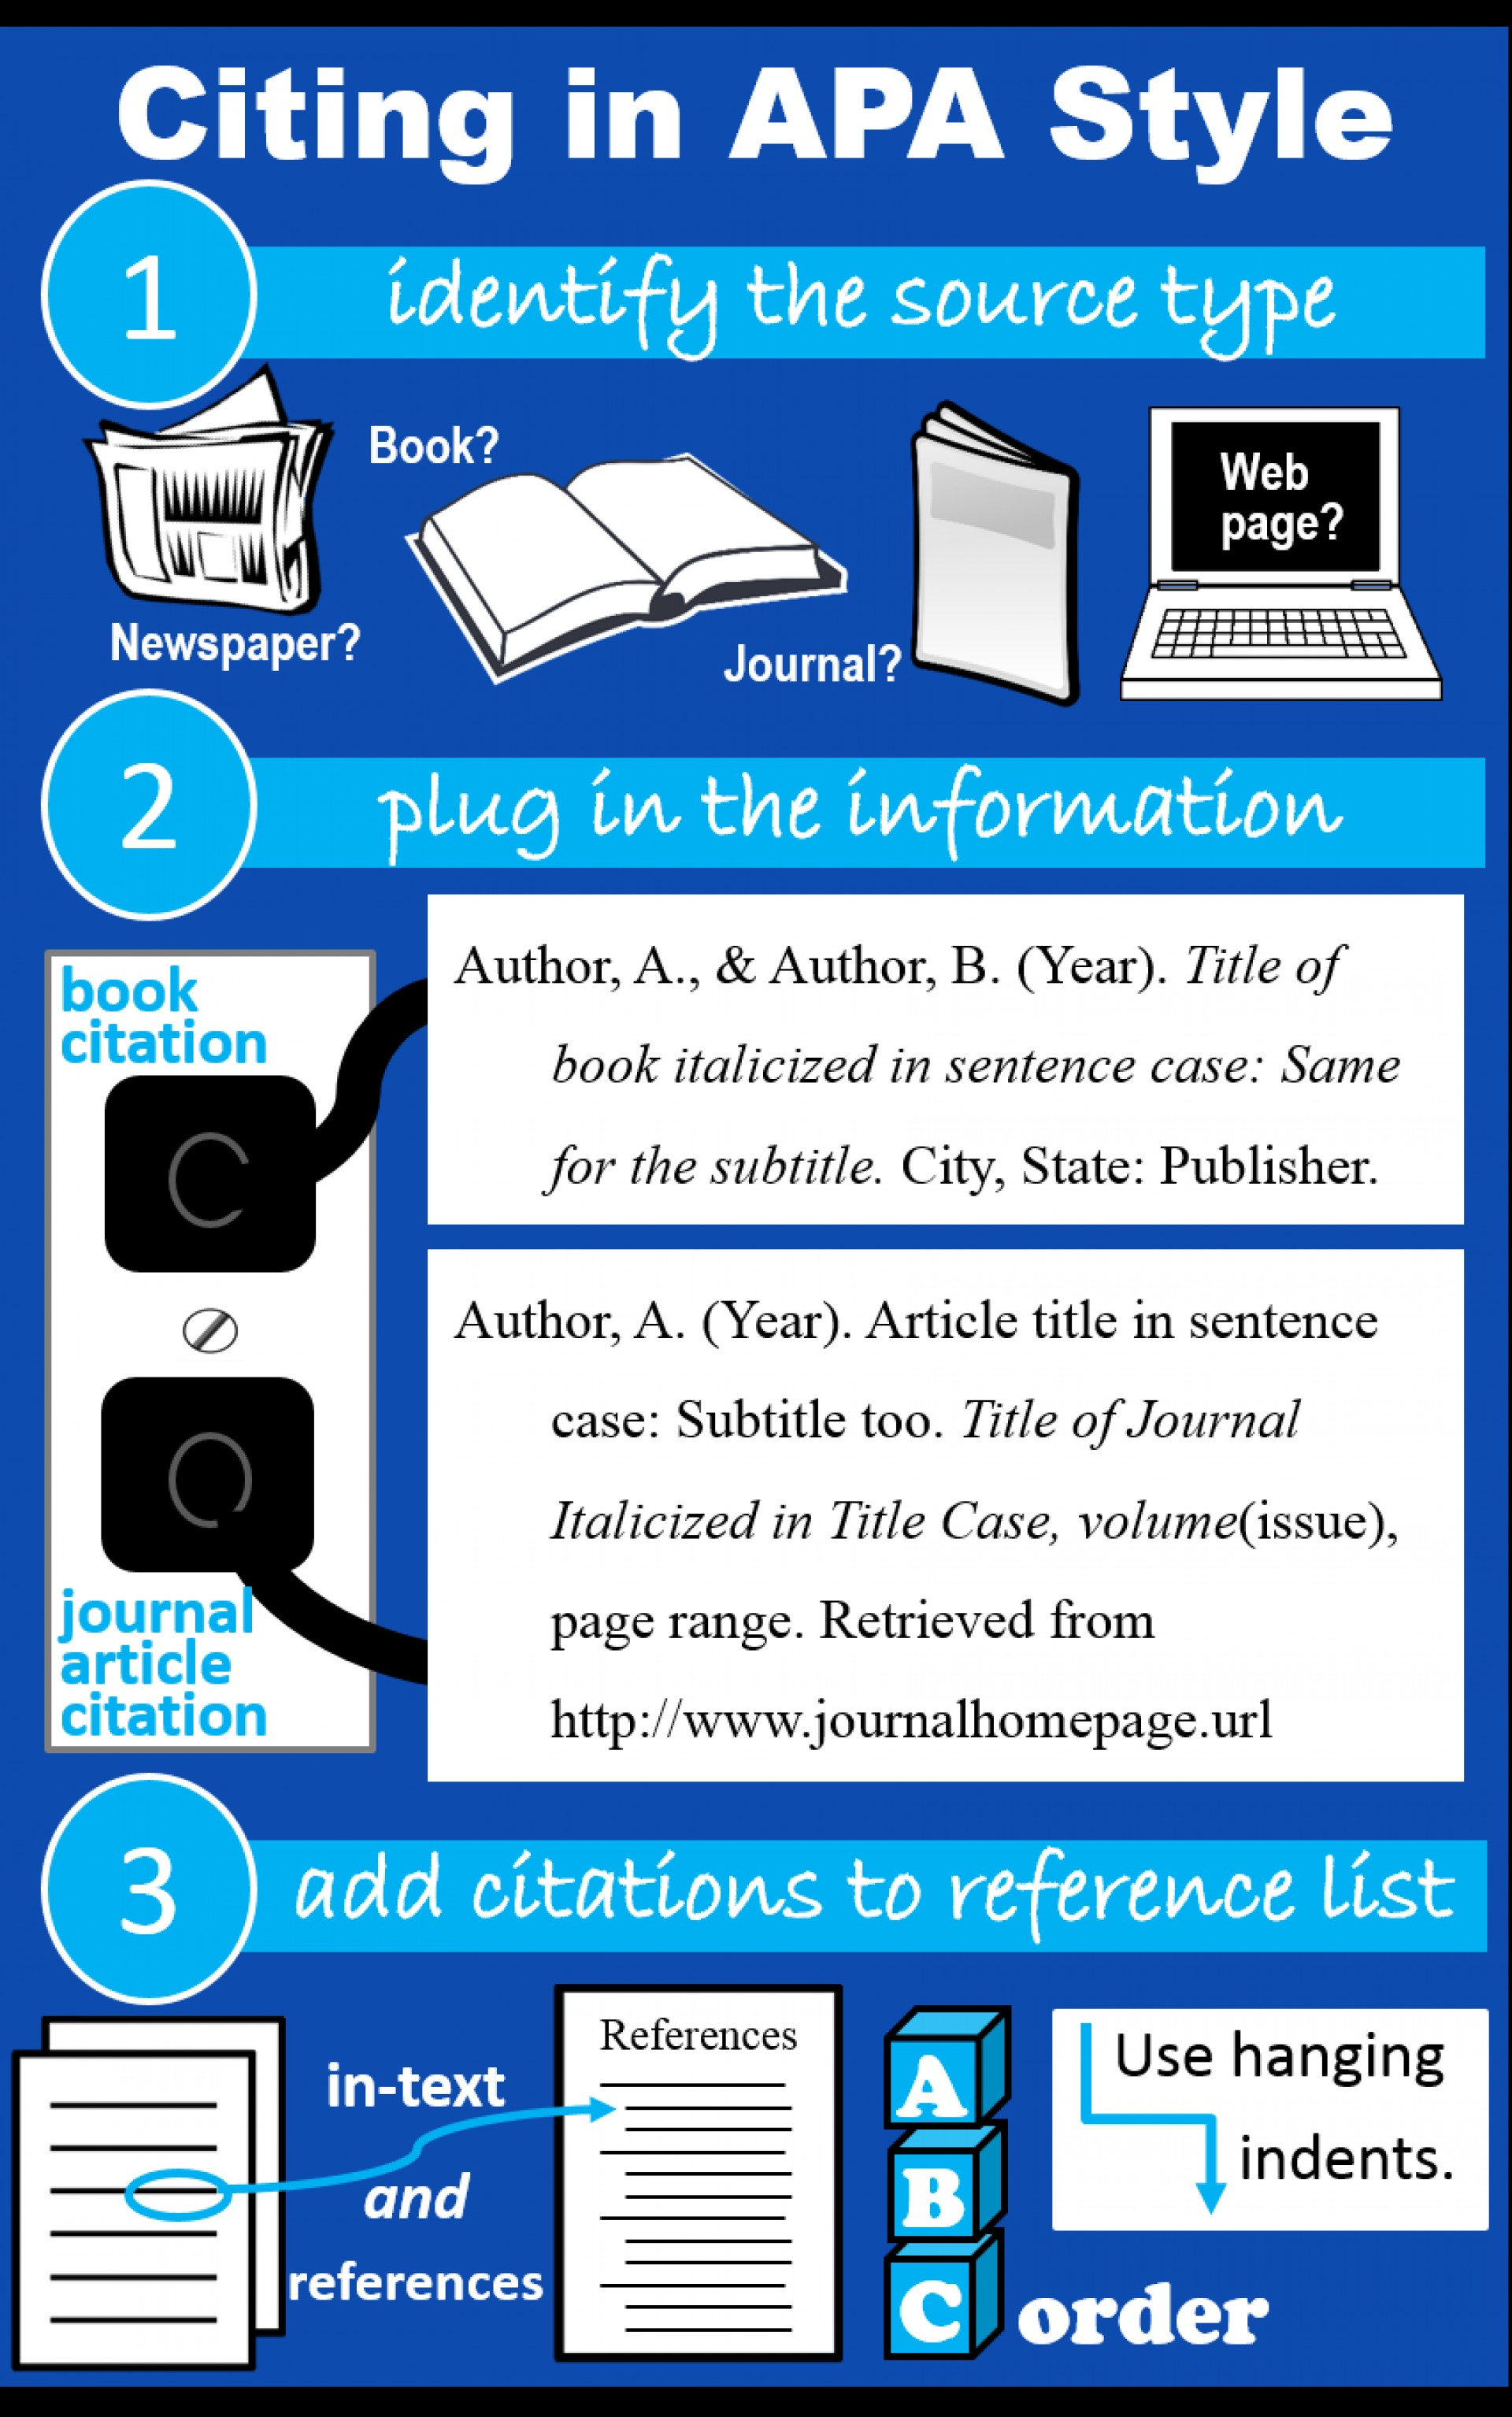 010 Research Paper Infographic Citing Sources In Paragraph Impressive Apa How To Cite A Style 1920